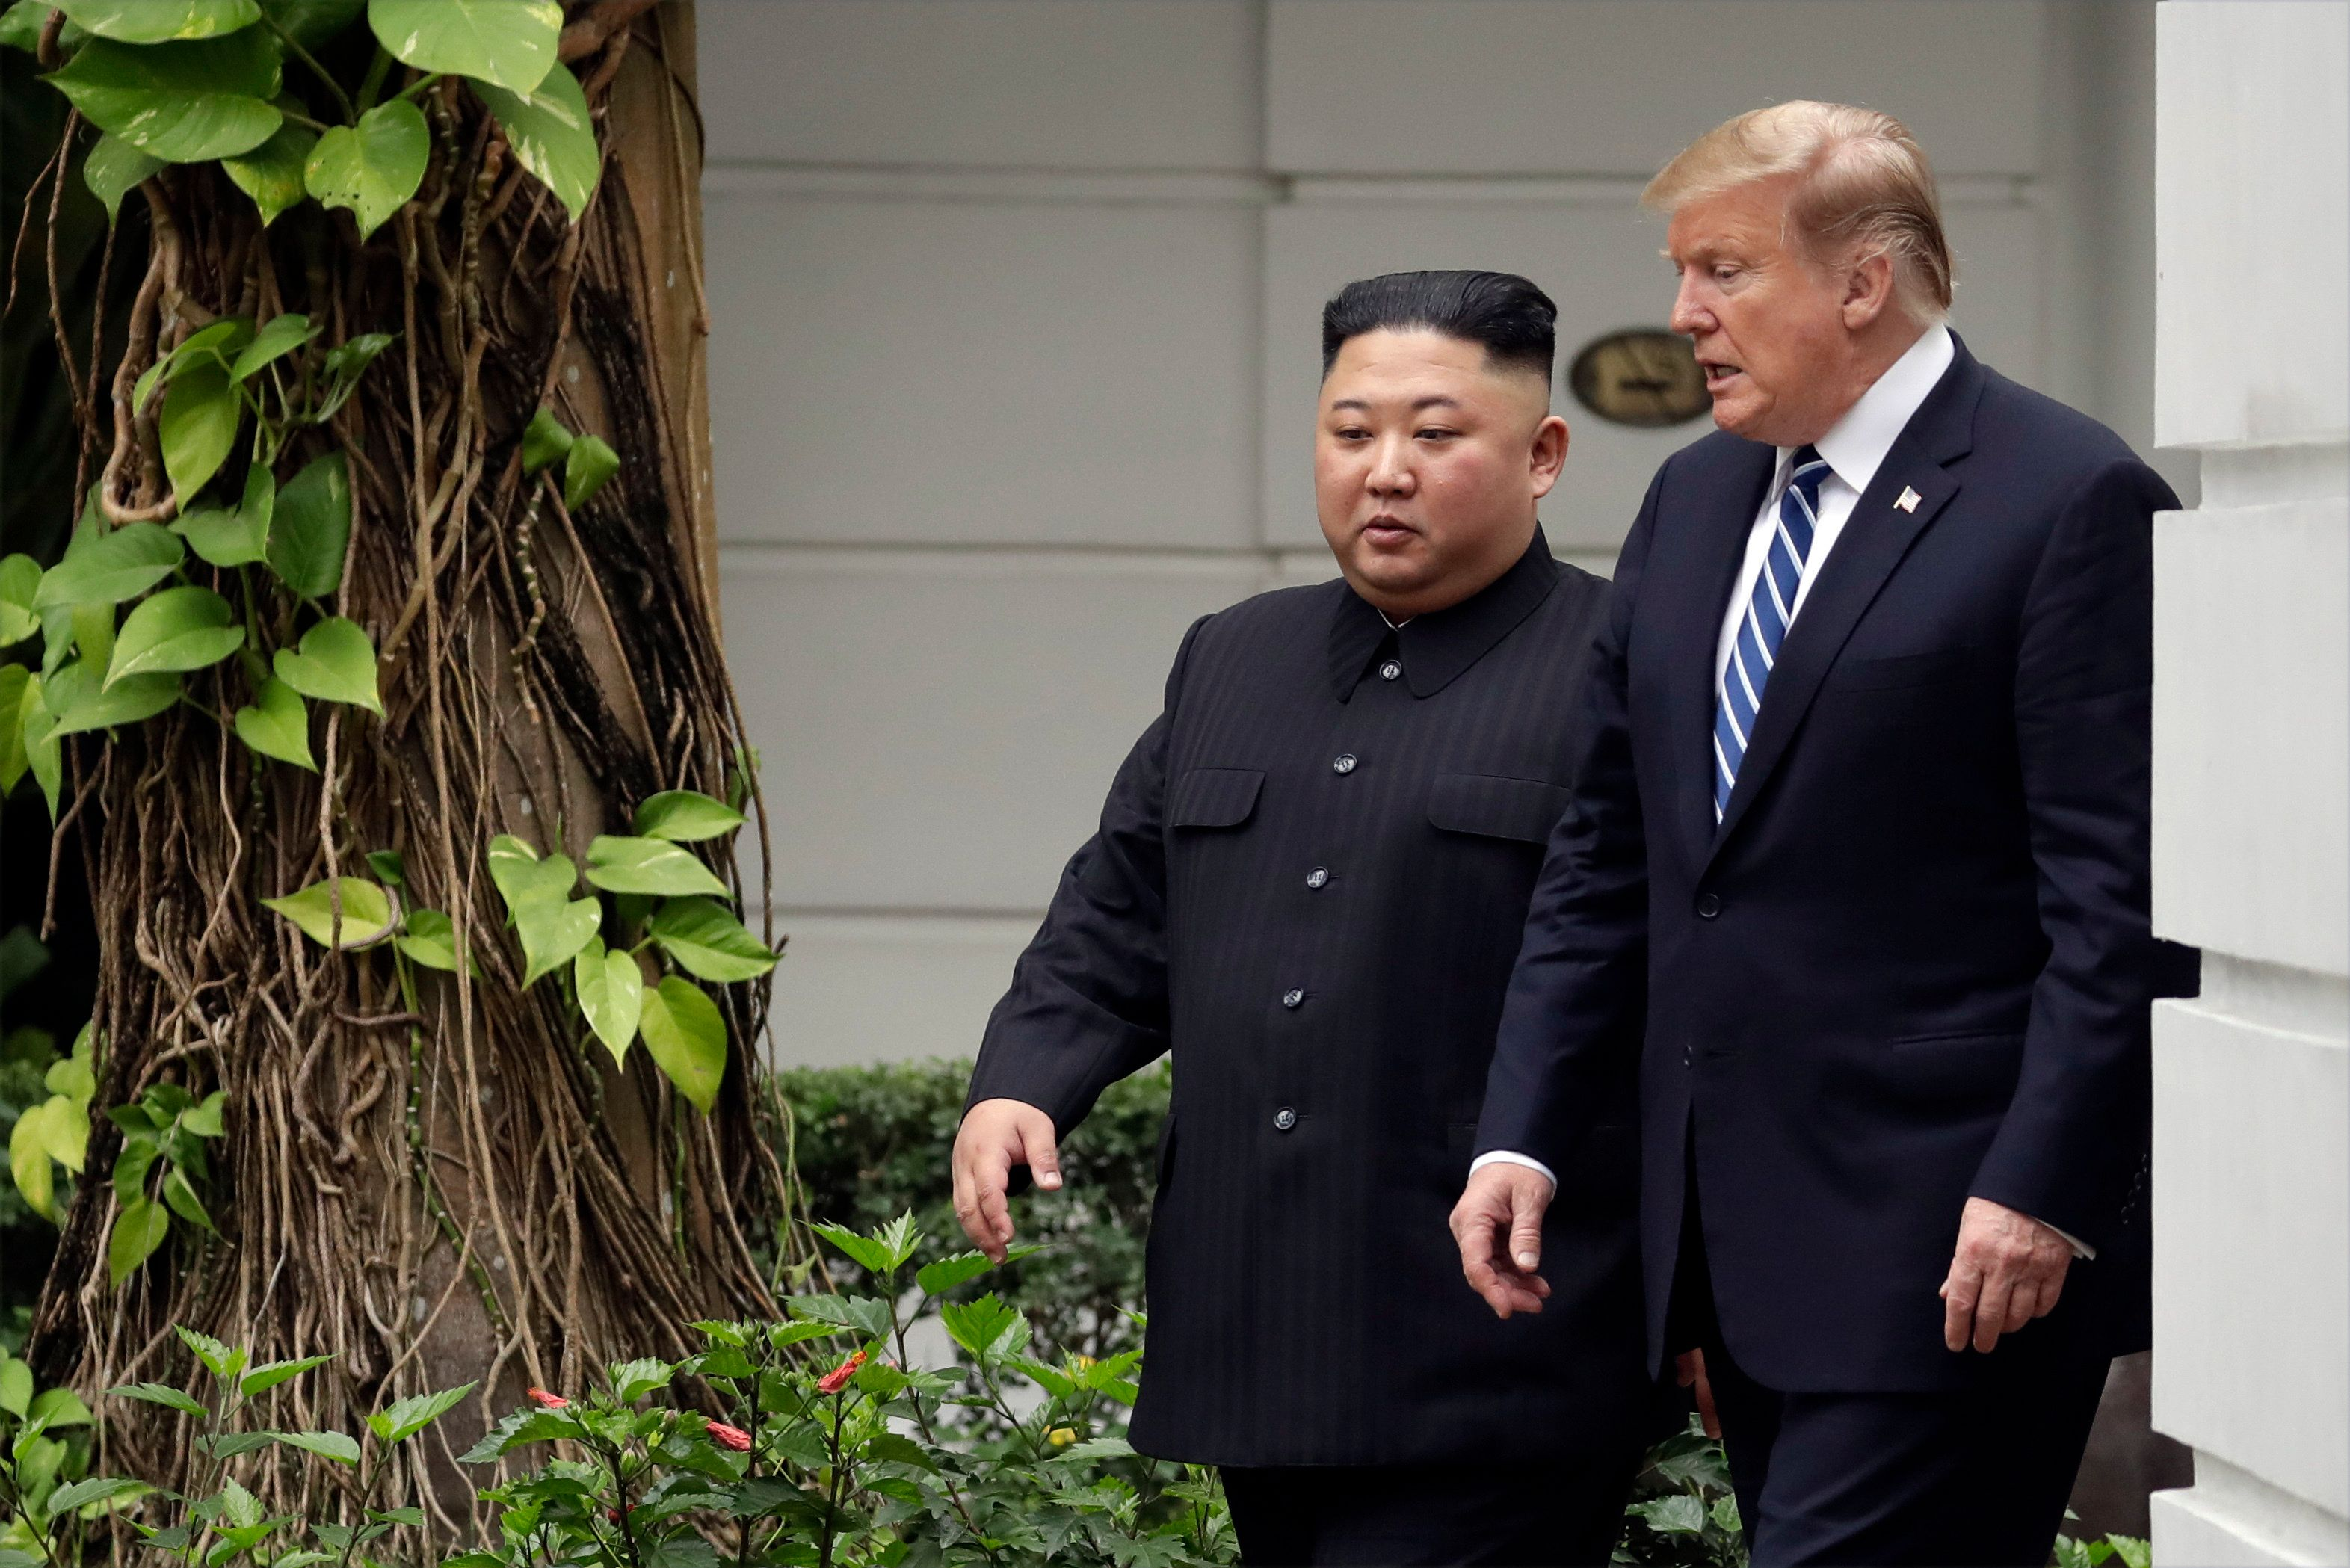 President Donald Trump and North Korean leader Kim Jong Un take a walk after their first meeting at the Sofitel Legend Metropole Hanoi hotel, Thursday, Feb. 28, 2019, in Hanoi. (AP Photo/Evan Vucci)